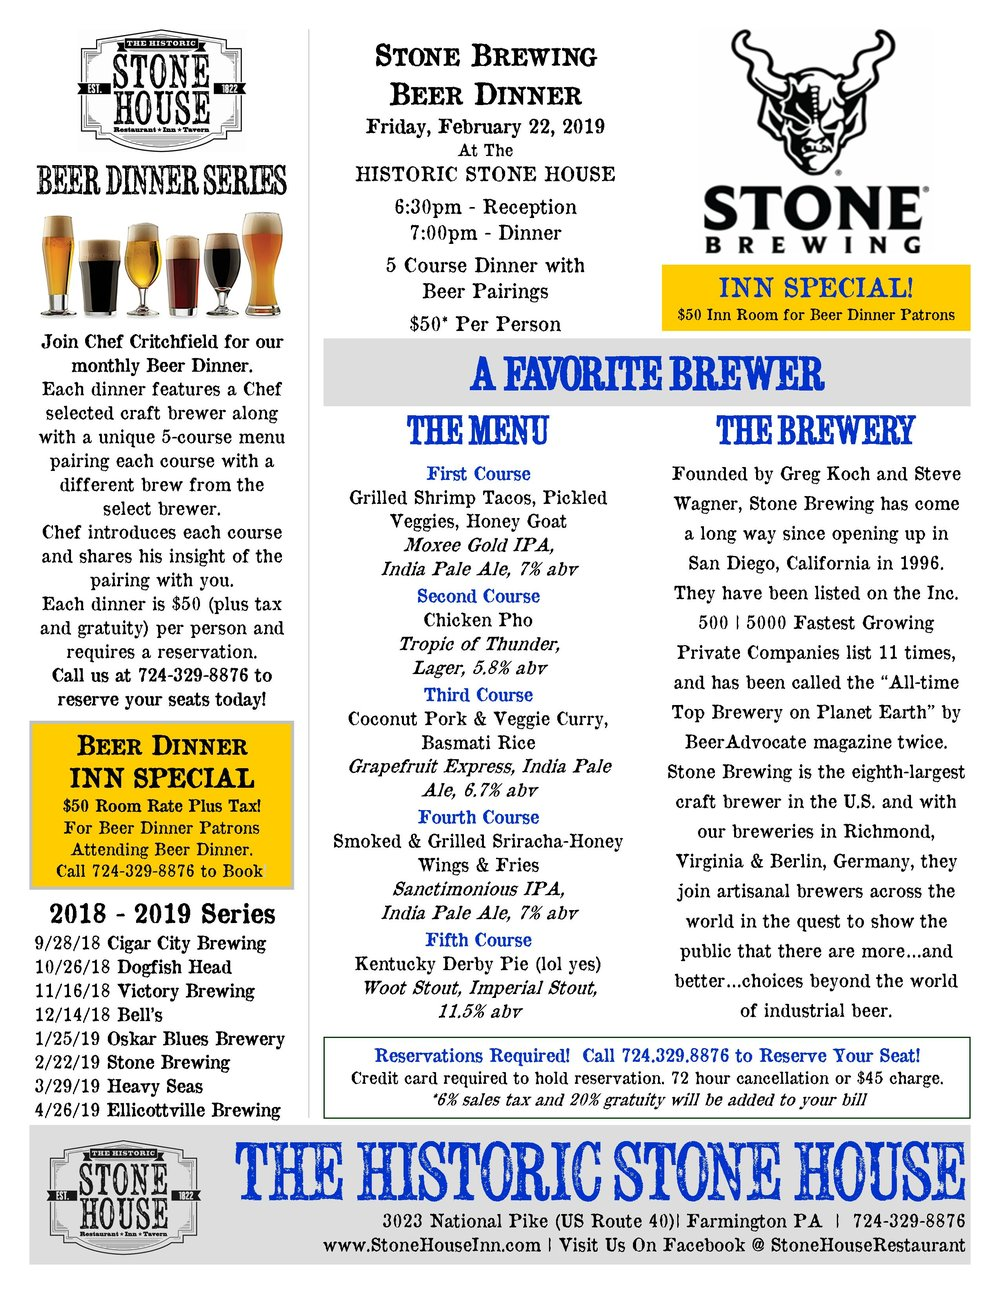 Stone Brewing Beer Dinner 022219.jpg